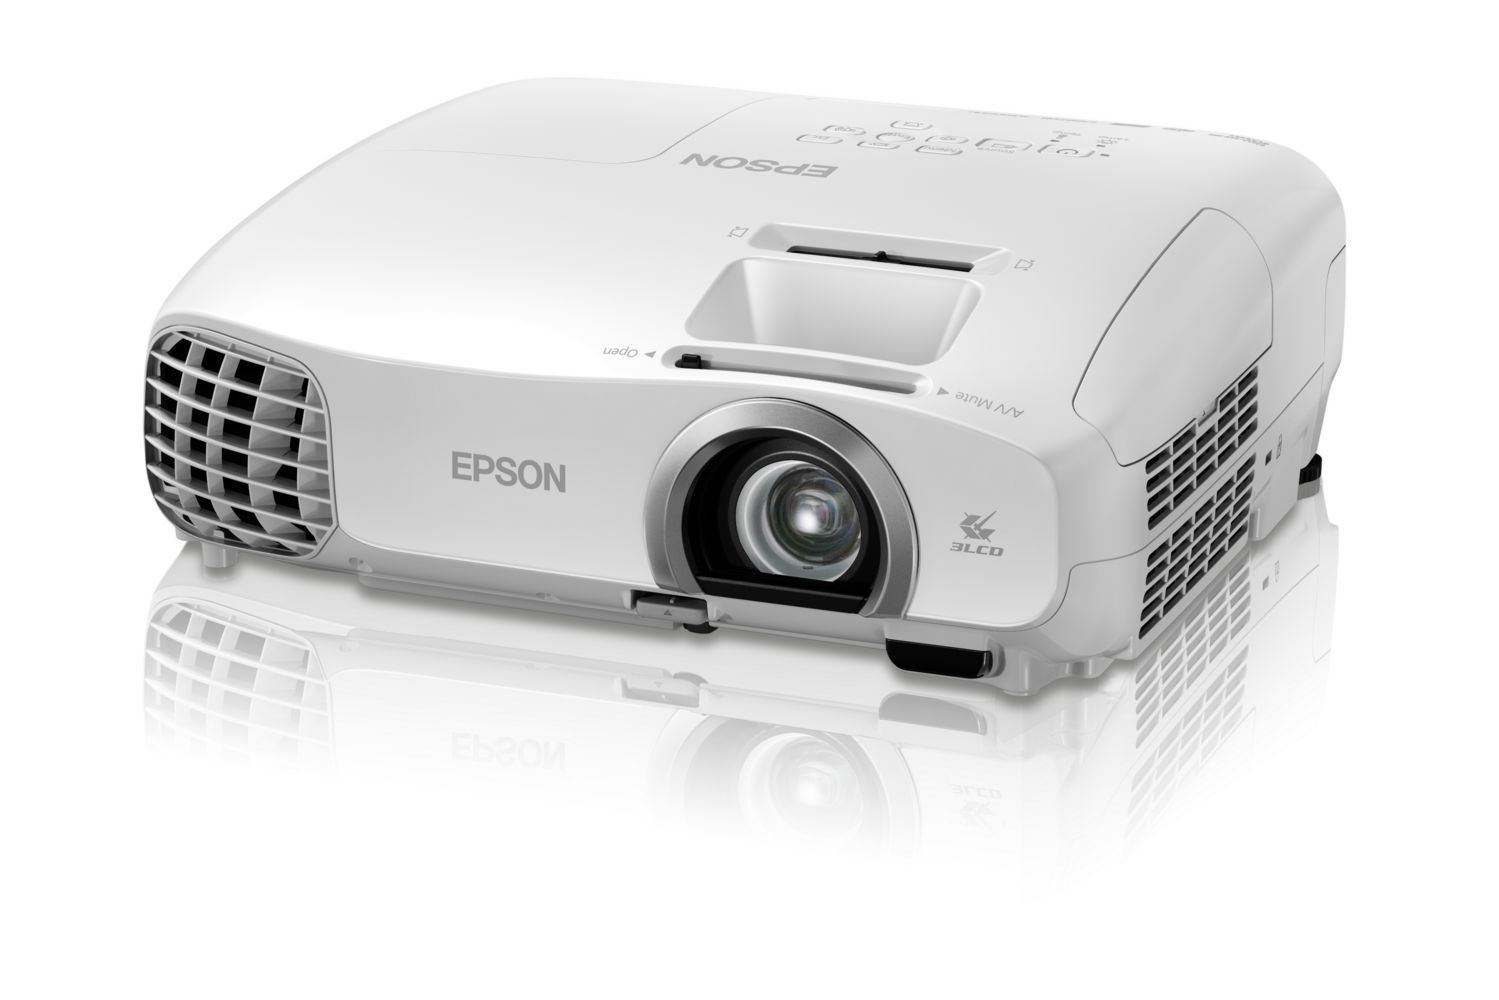 EPSON dreamio EH-TW5200 Full HD 1080p 3LCD 3D Home Cinema and Gaming Projector (Japan Import)